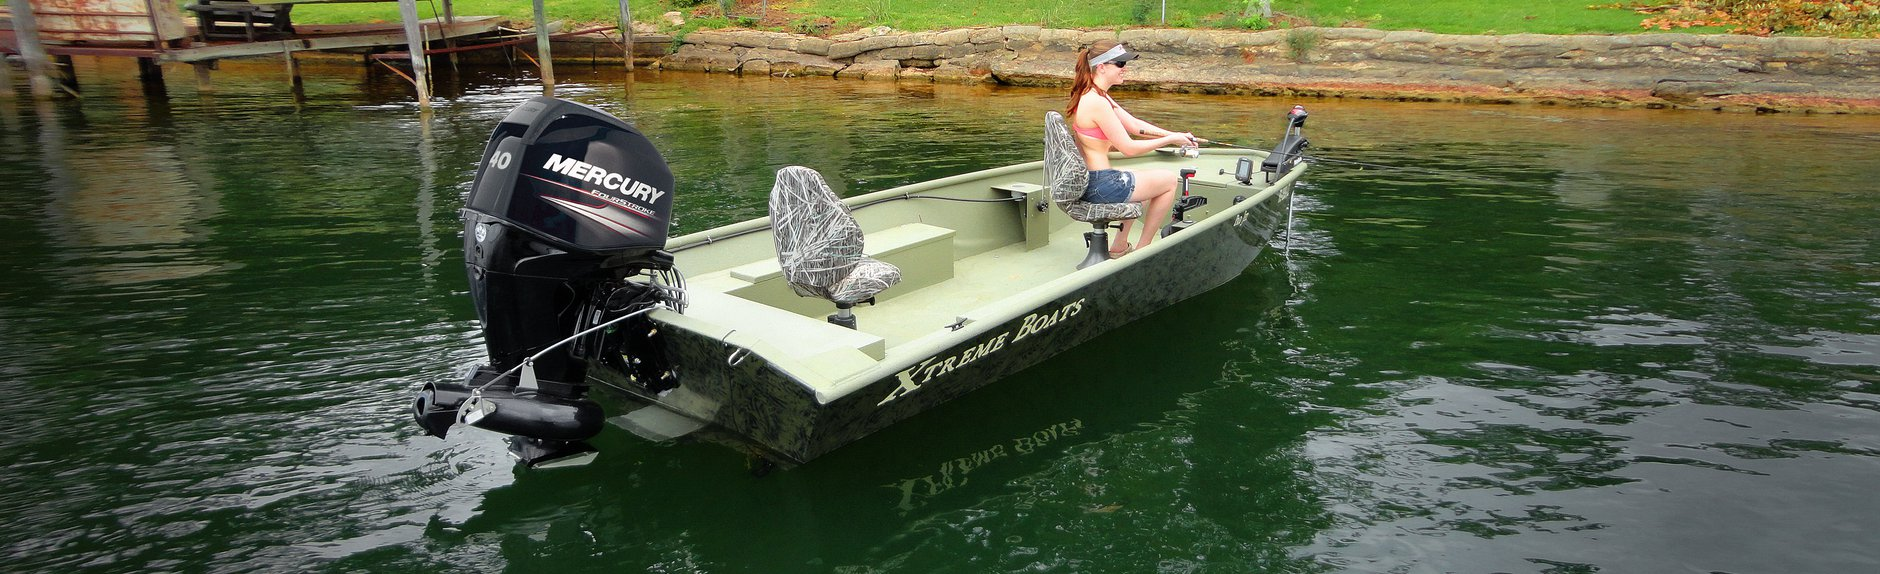 Jet 25 - 40 HP Outboards